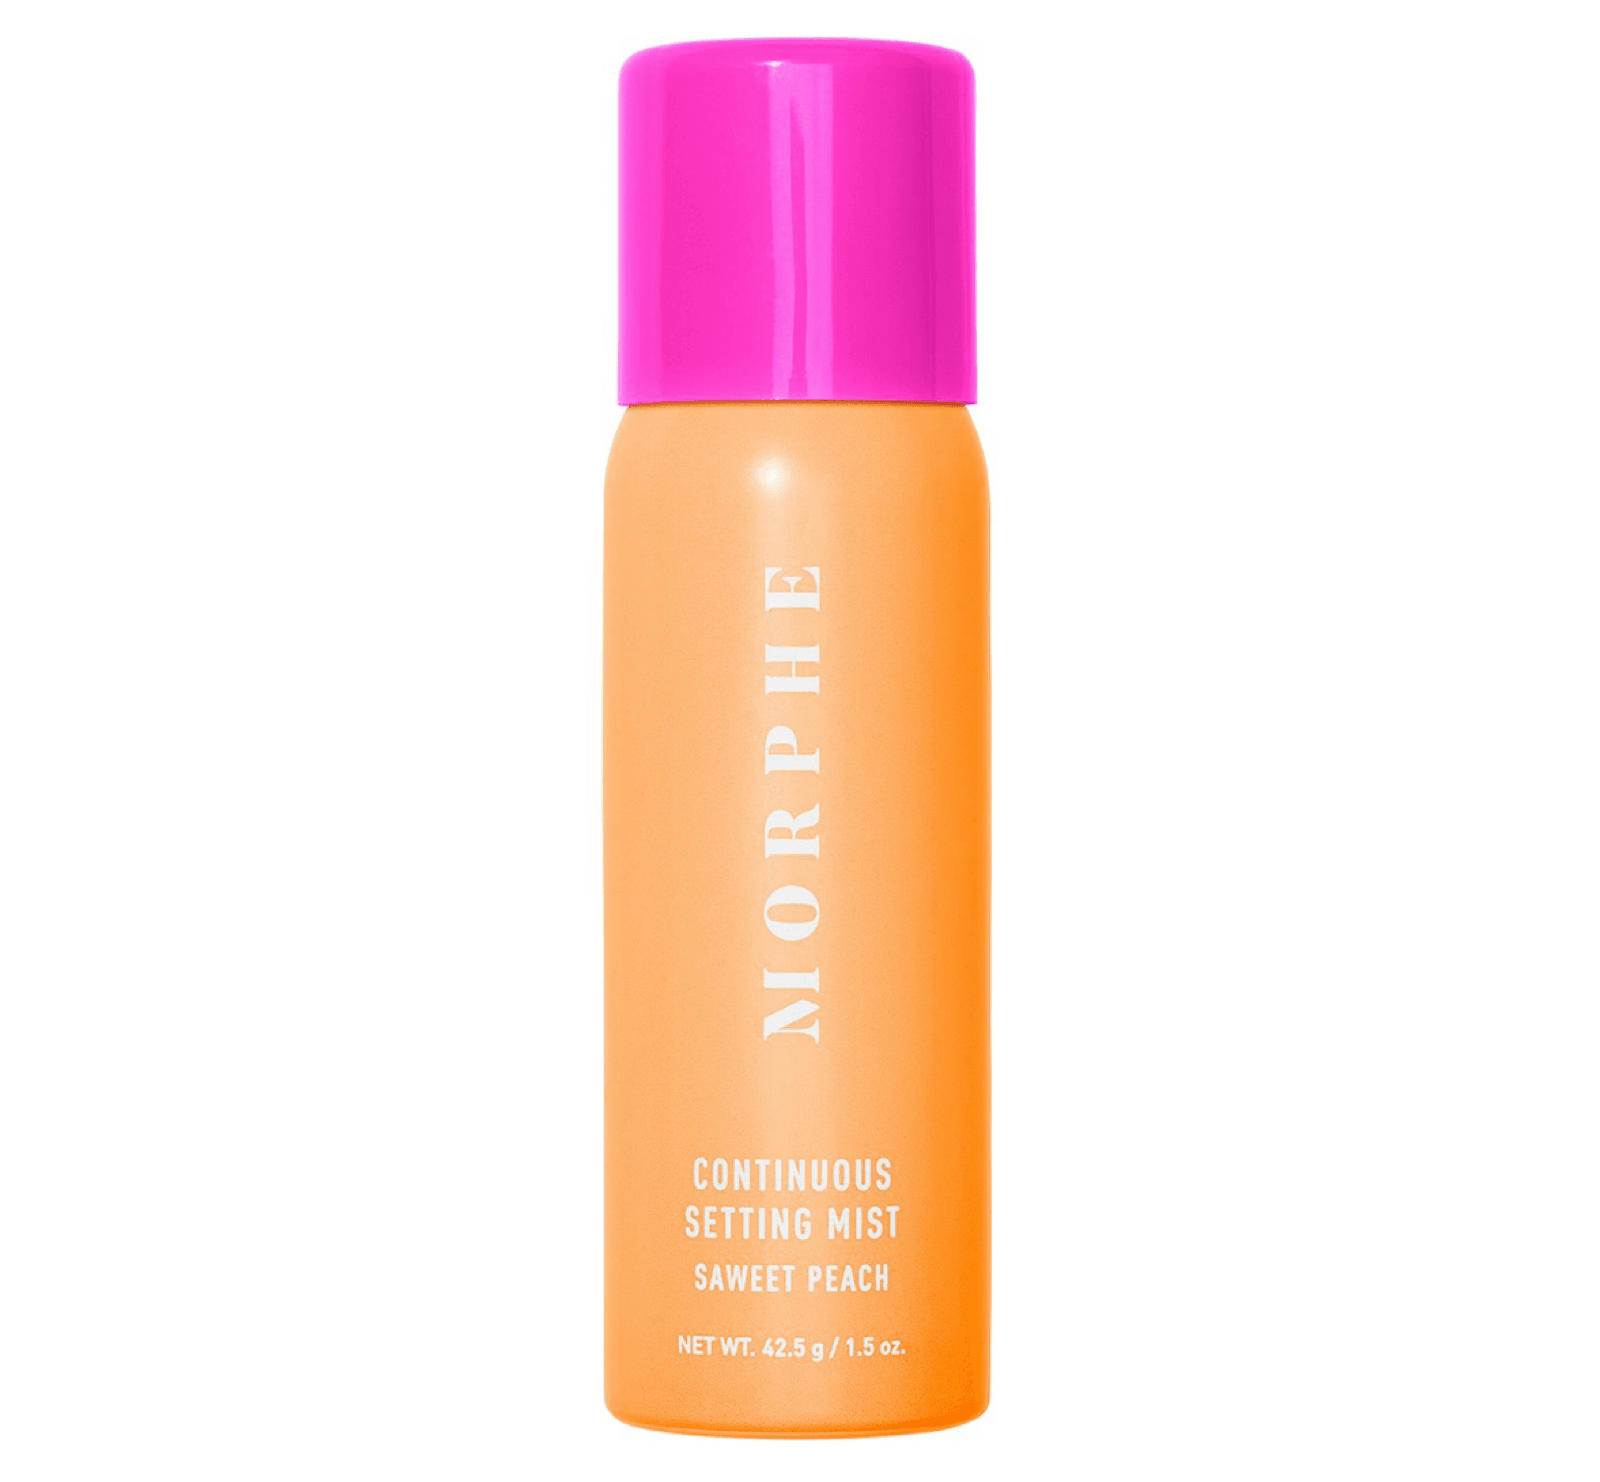 Morphe Saweet Peach Mini Continuous Setting Mist